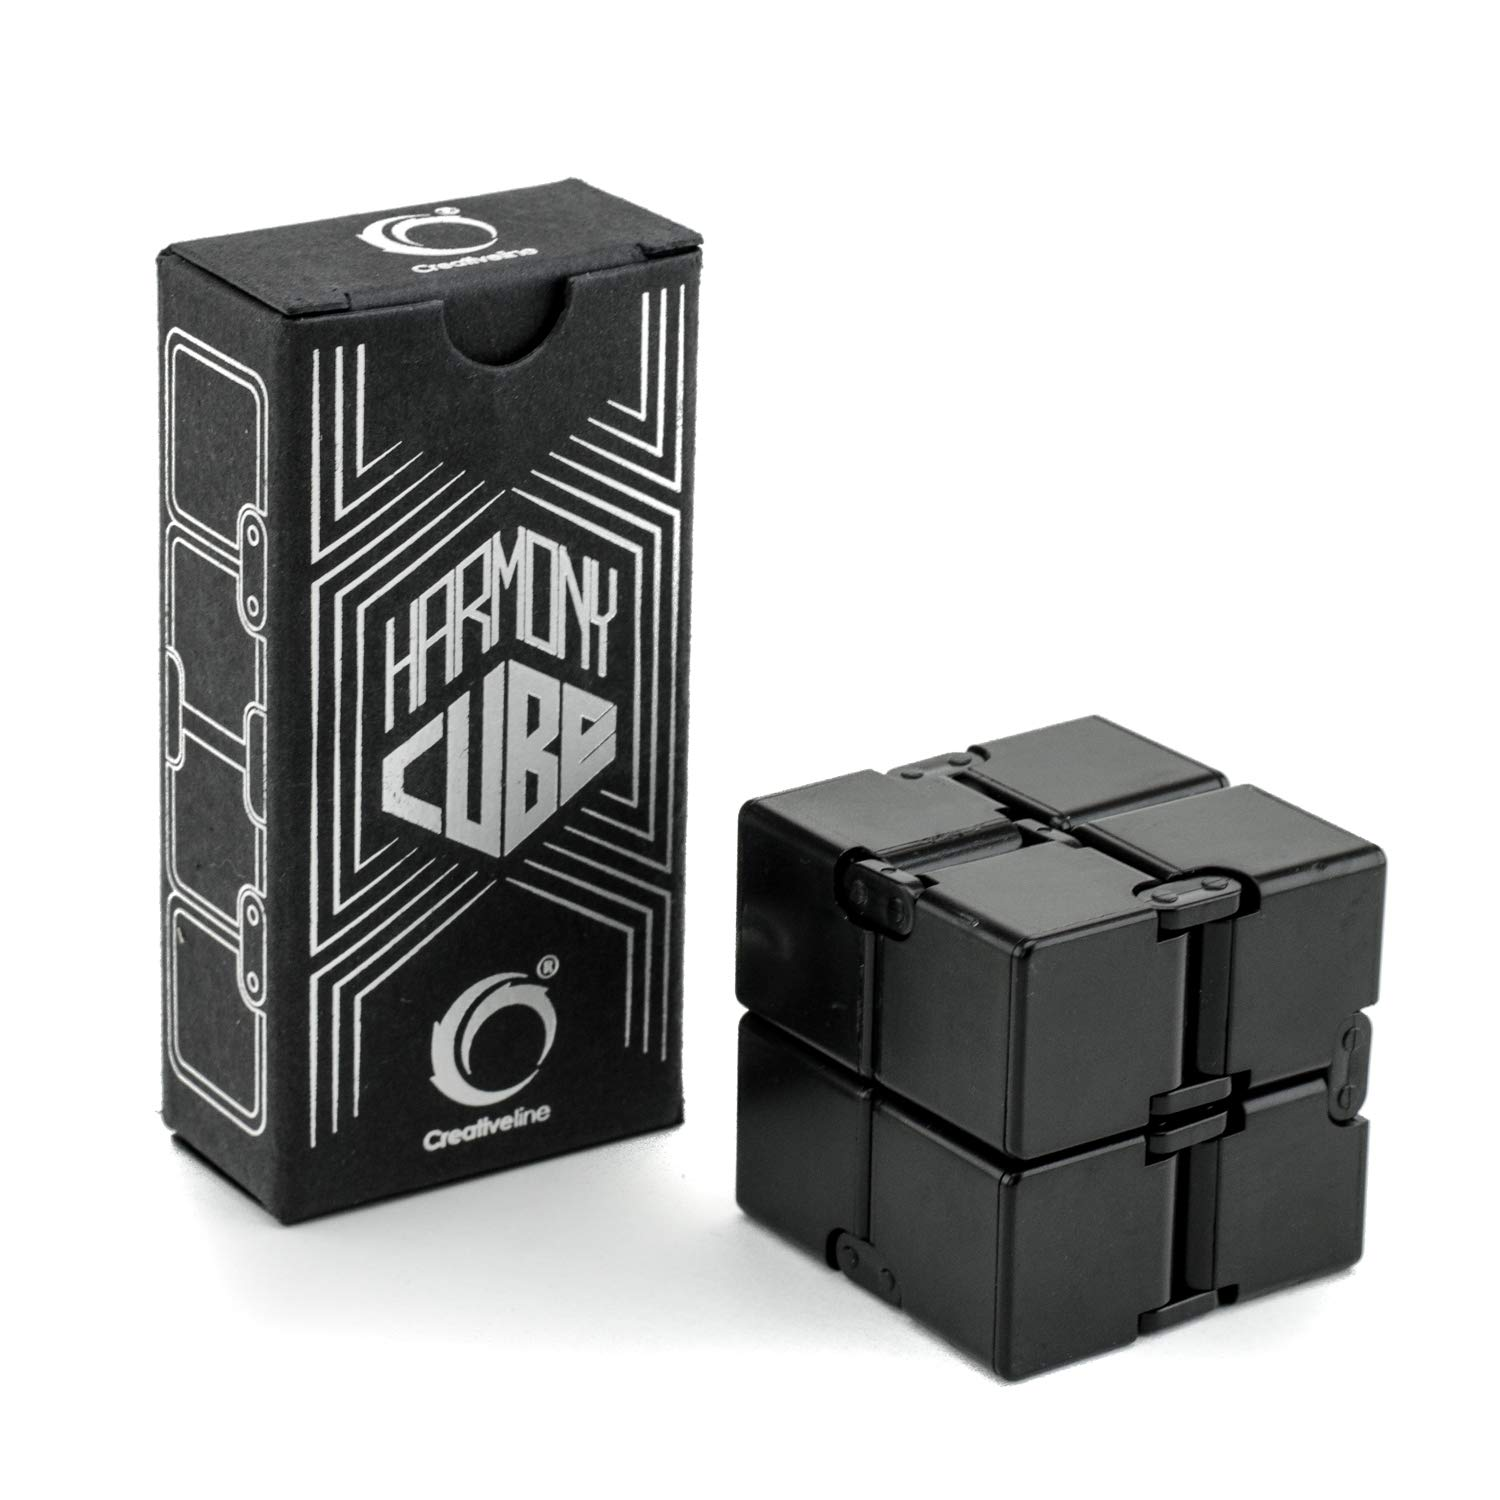 Creativeline Harmony Cube | Calming Toy to Relieve Stress, Anxiety & Kill Time | Magic Mini Gadget Ideal for Office, Travel & Classroom | Therapy for All Fingers & Hands Adults, Teens & Kids